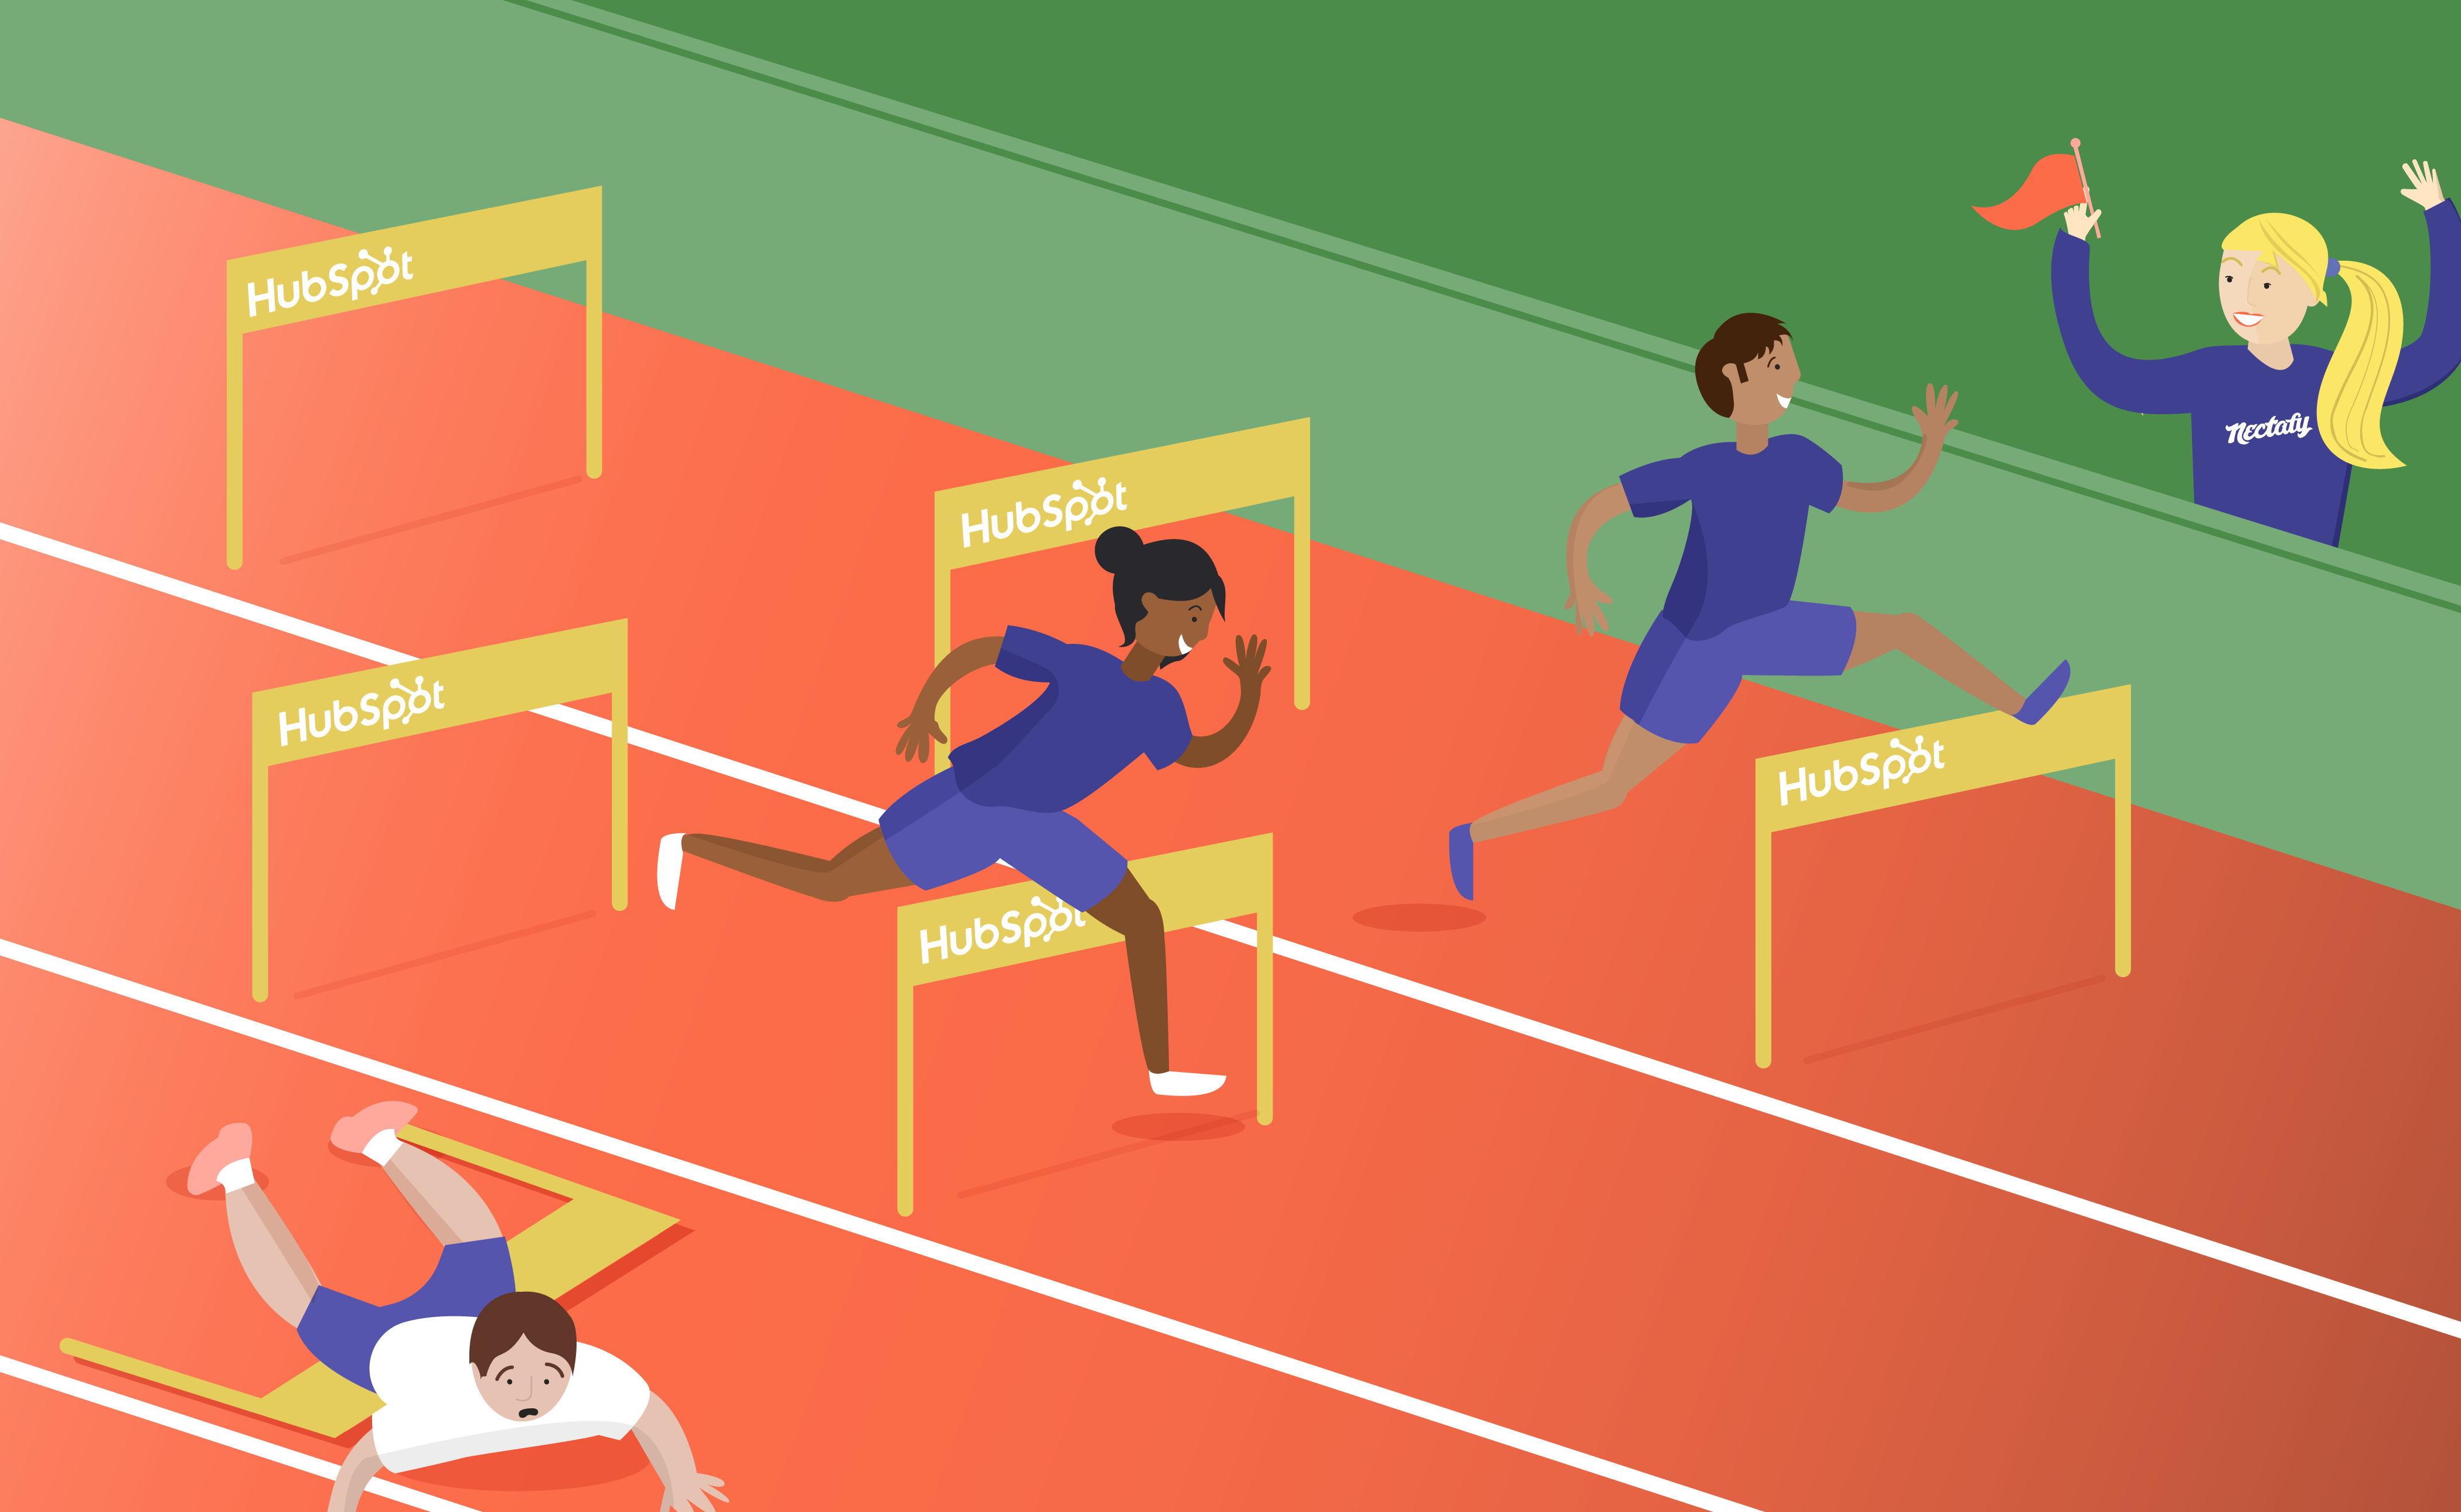 6 Obstacles Every HubSpot User Must Overcome (& How To Do It)